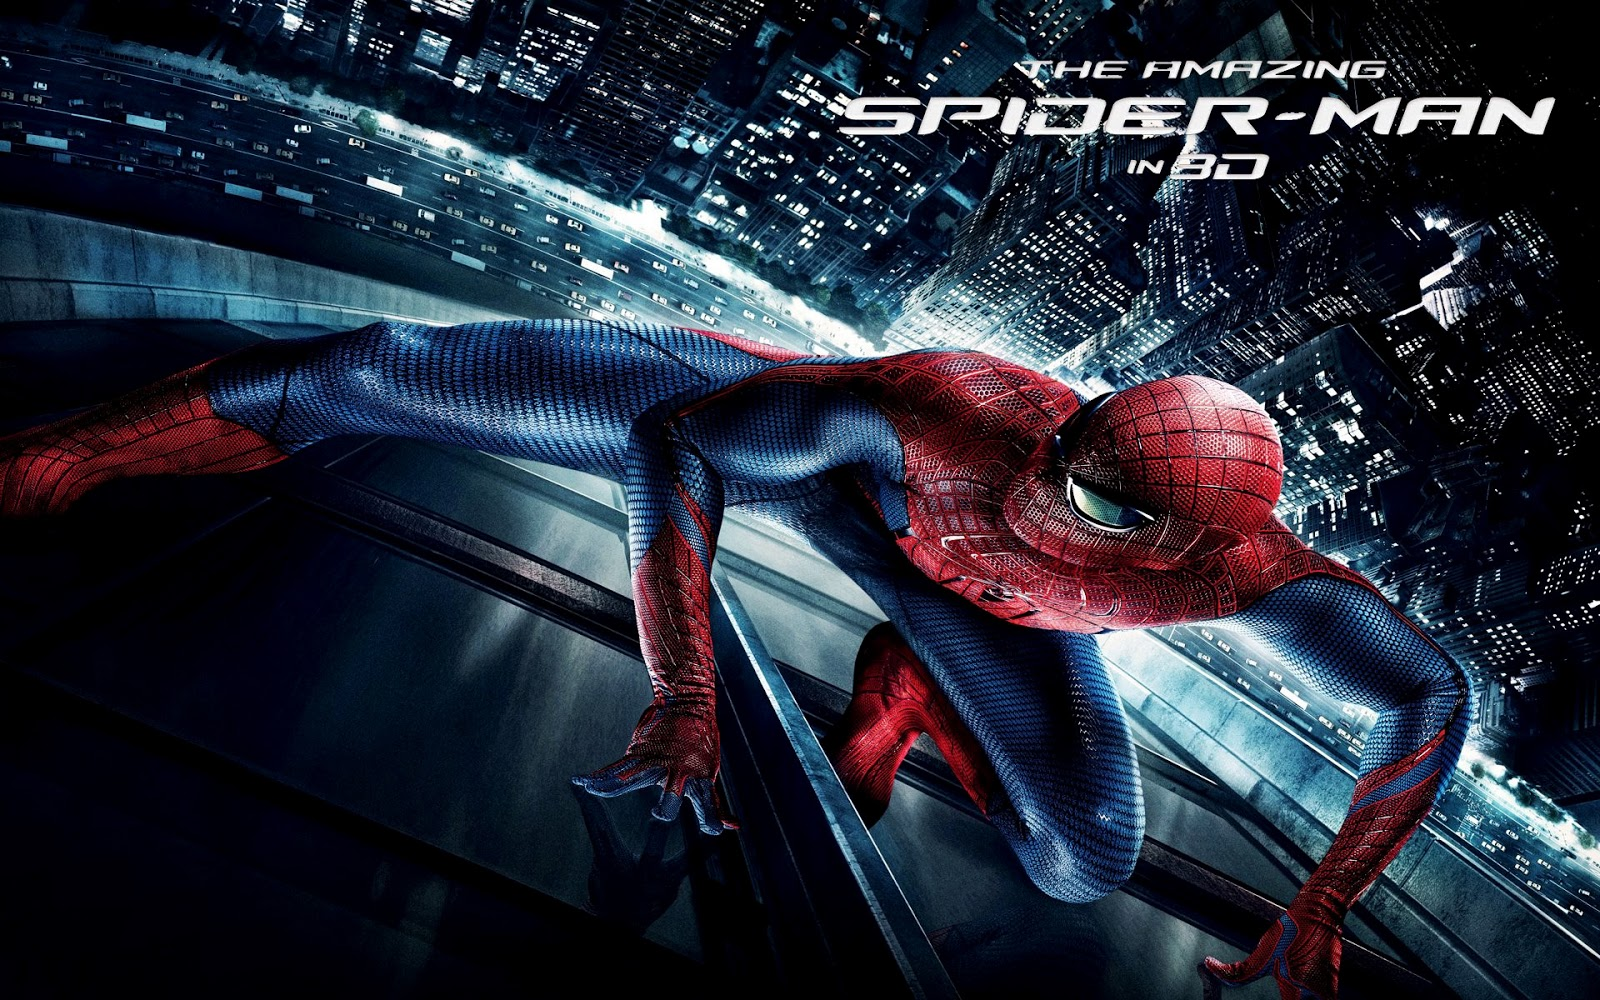 http://1.bp.blogspot.com/-t0viZ1Nq94g/T55jkMUbocI/AAAAAAAAFt0/kOvf5gGAImk/s1600/The_Amazing_Spider-Man_on_Skyscaper_Glass_HD_Movie_Wallpaper-Vvallpaper.Net.jpg